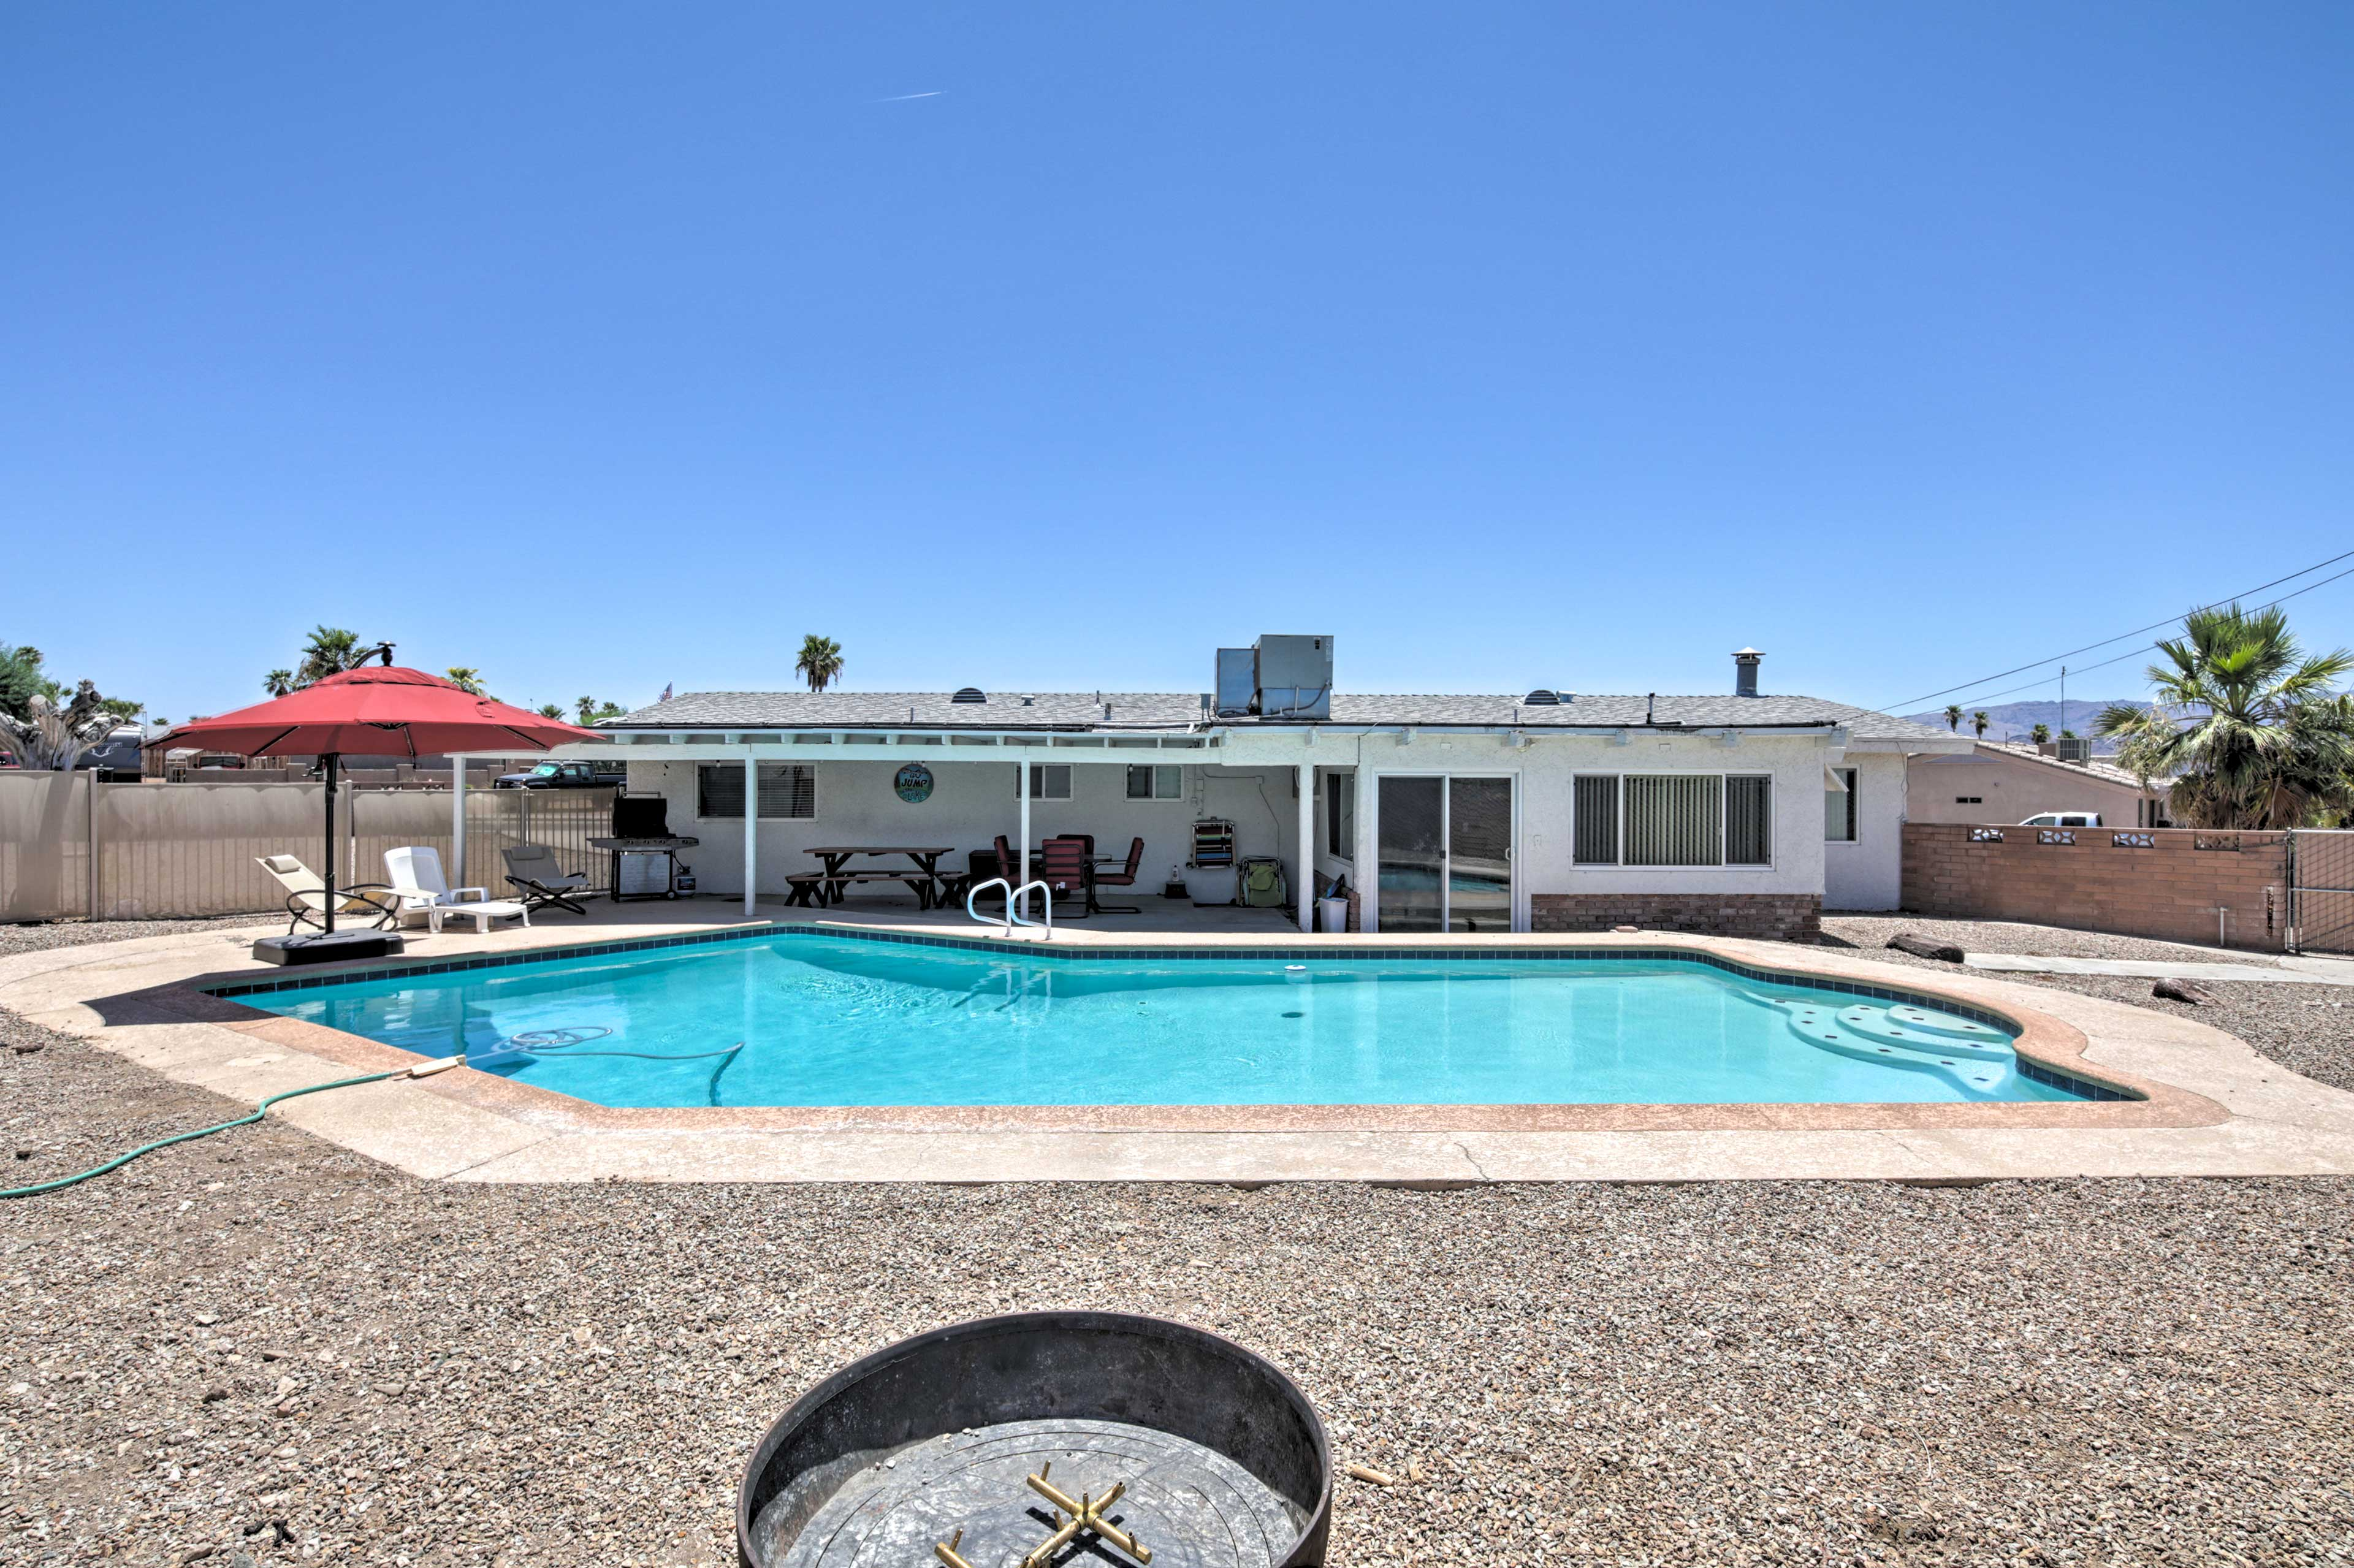 This solar-heated pool is the perfect place to cool off on balmy Arizona days.